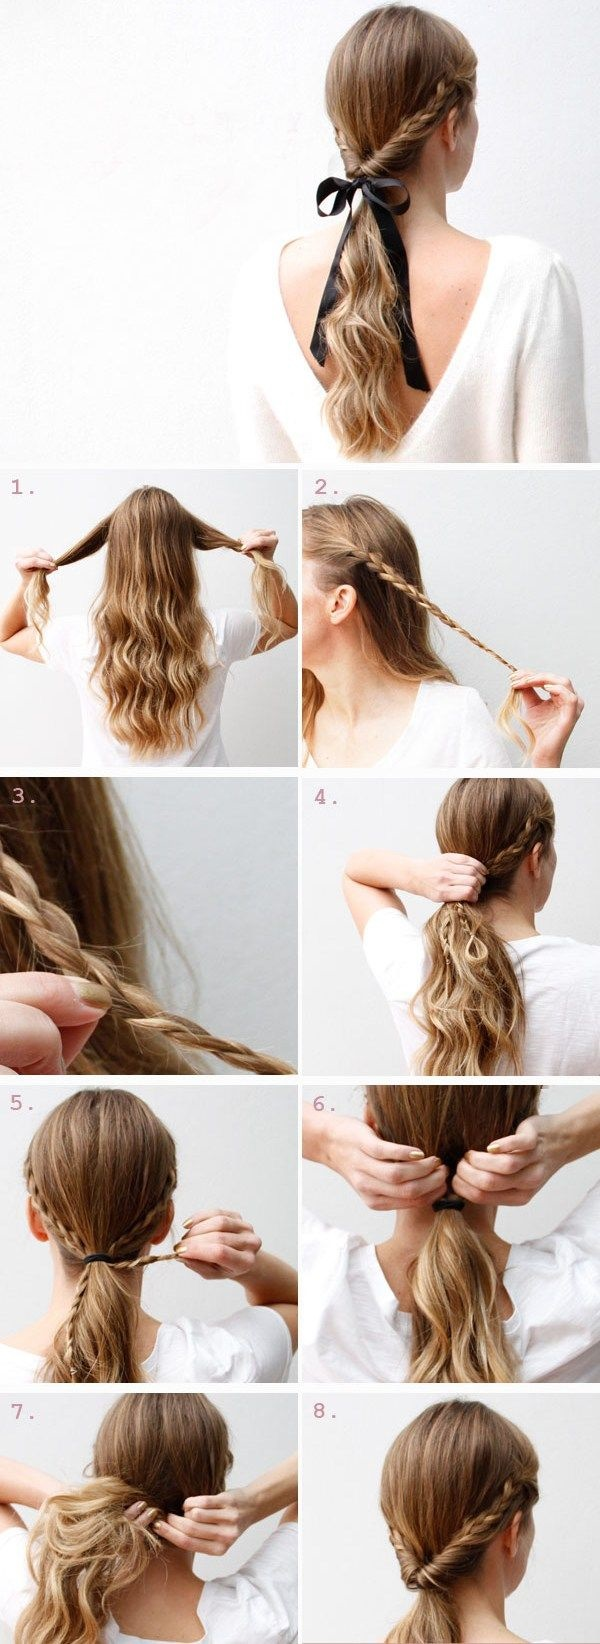 Quick And Easy Step By Step Hairstyles For Girls